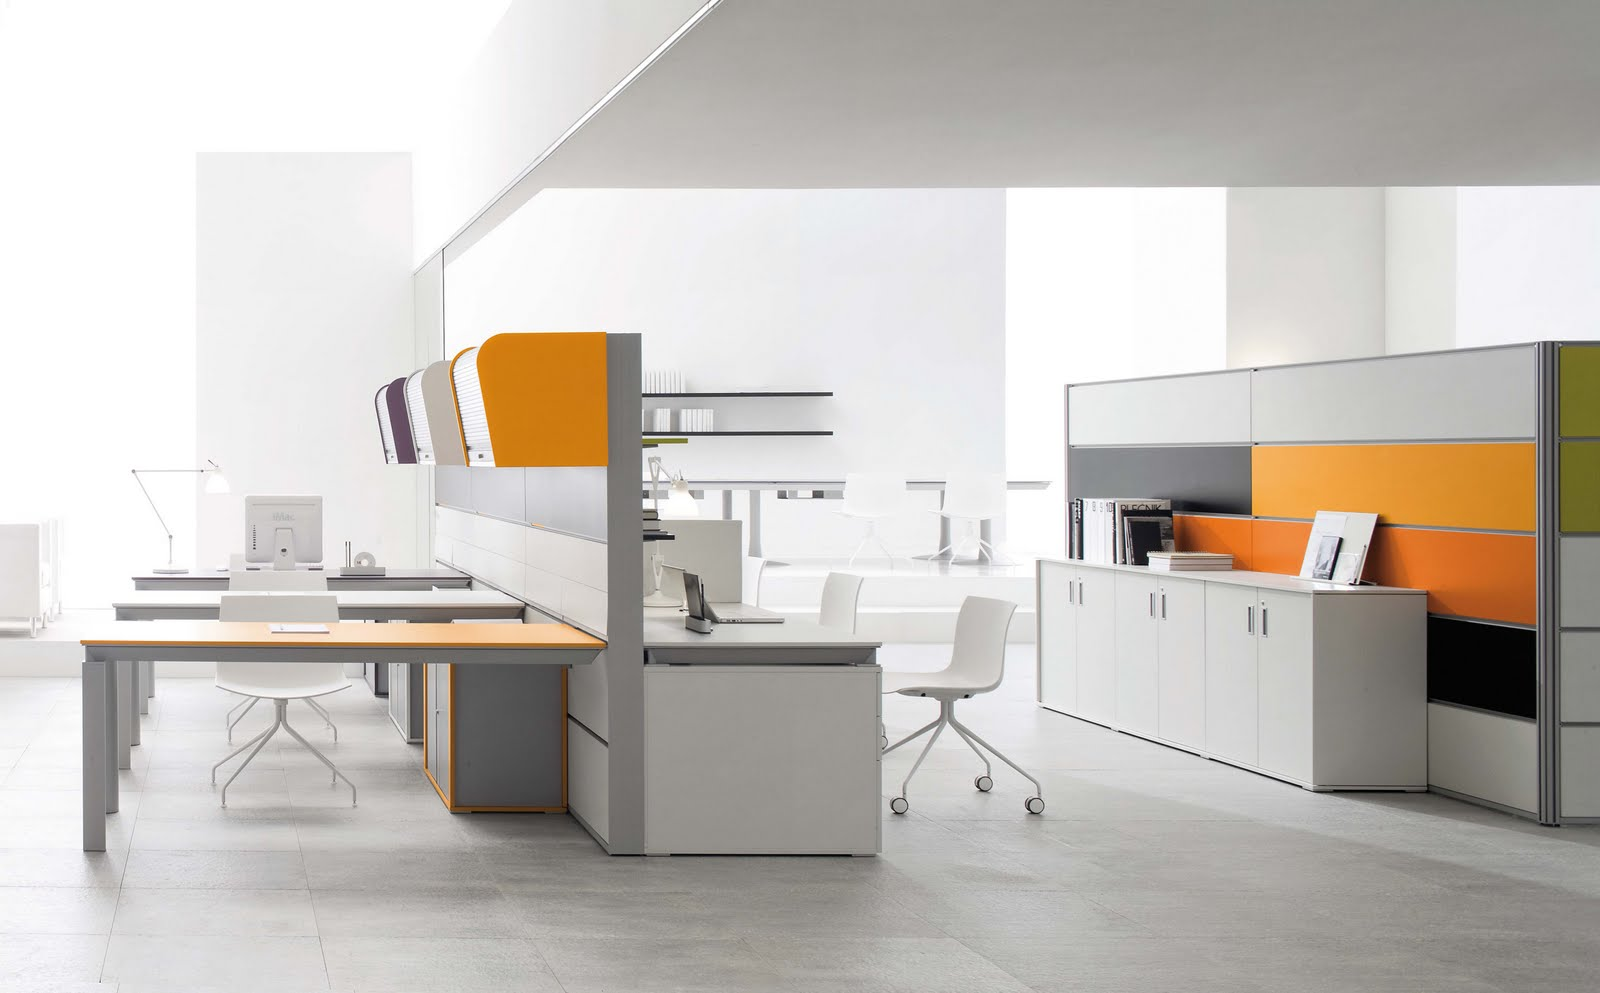 Sleek Modern Office Furniture Makes Stylish And Cool Office Atmosphere: Elegant Modern Office Furniture White Interior Grey Accents Desk